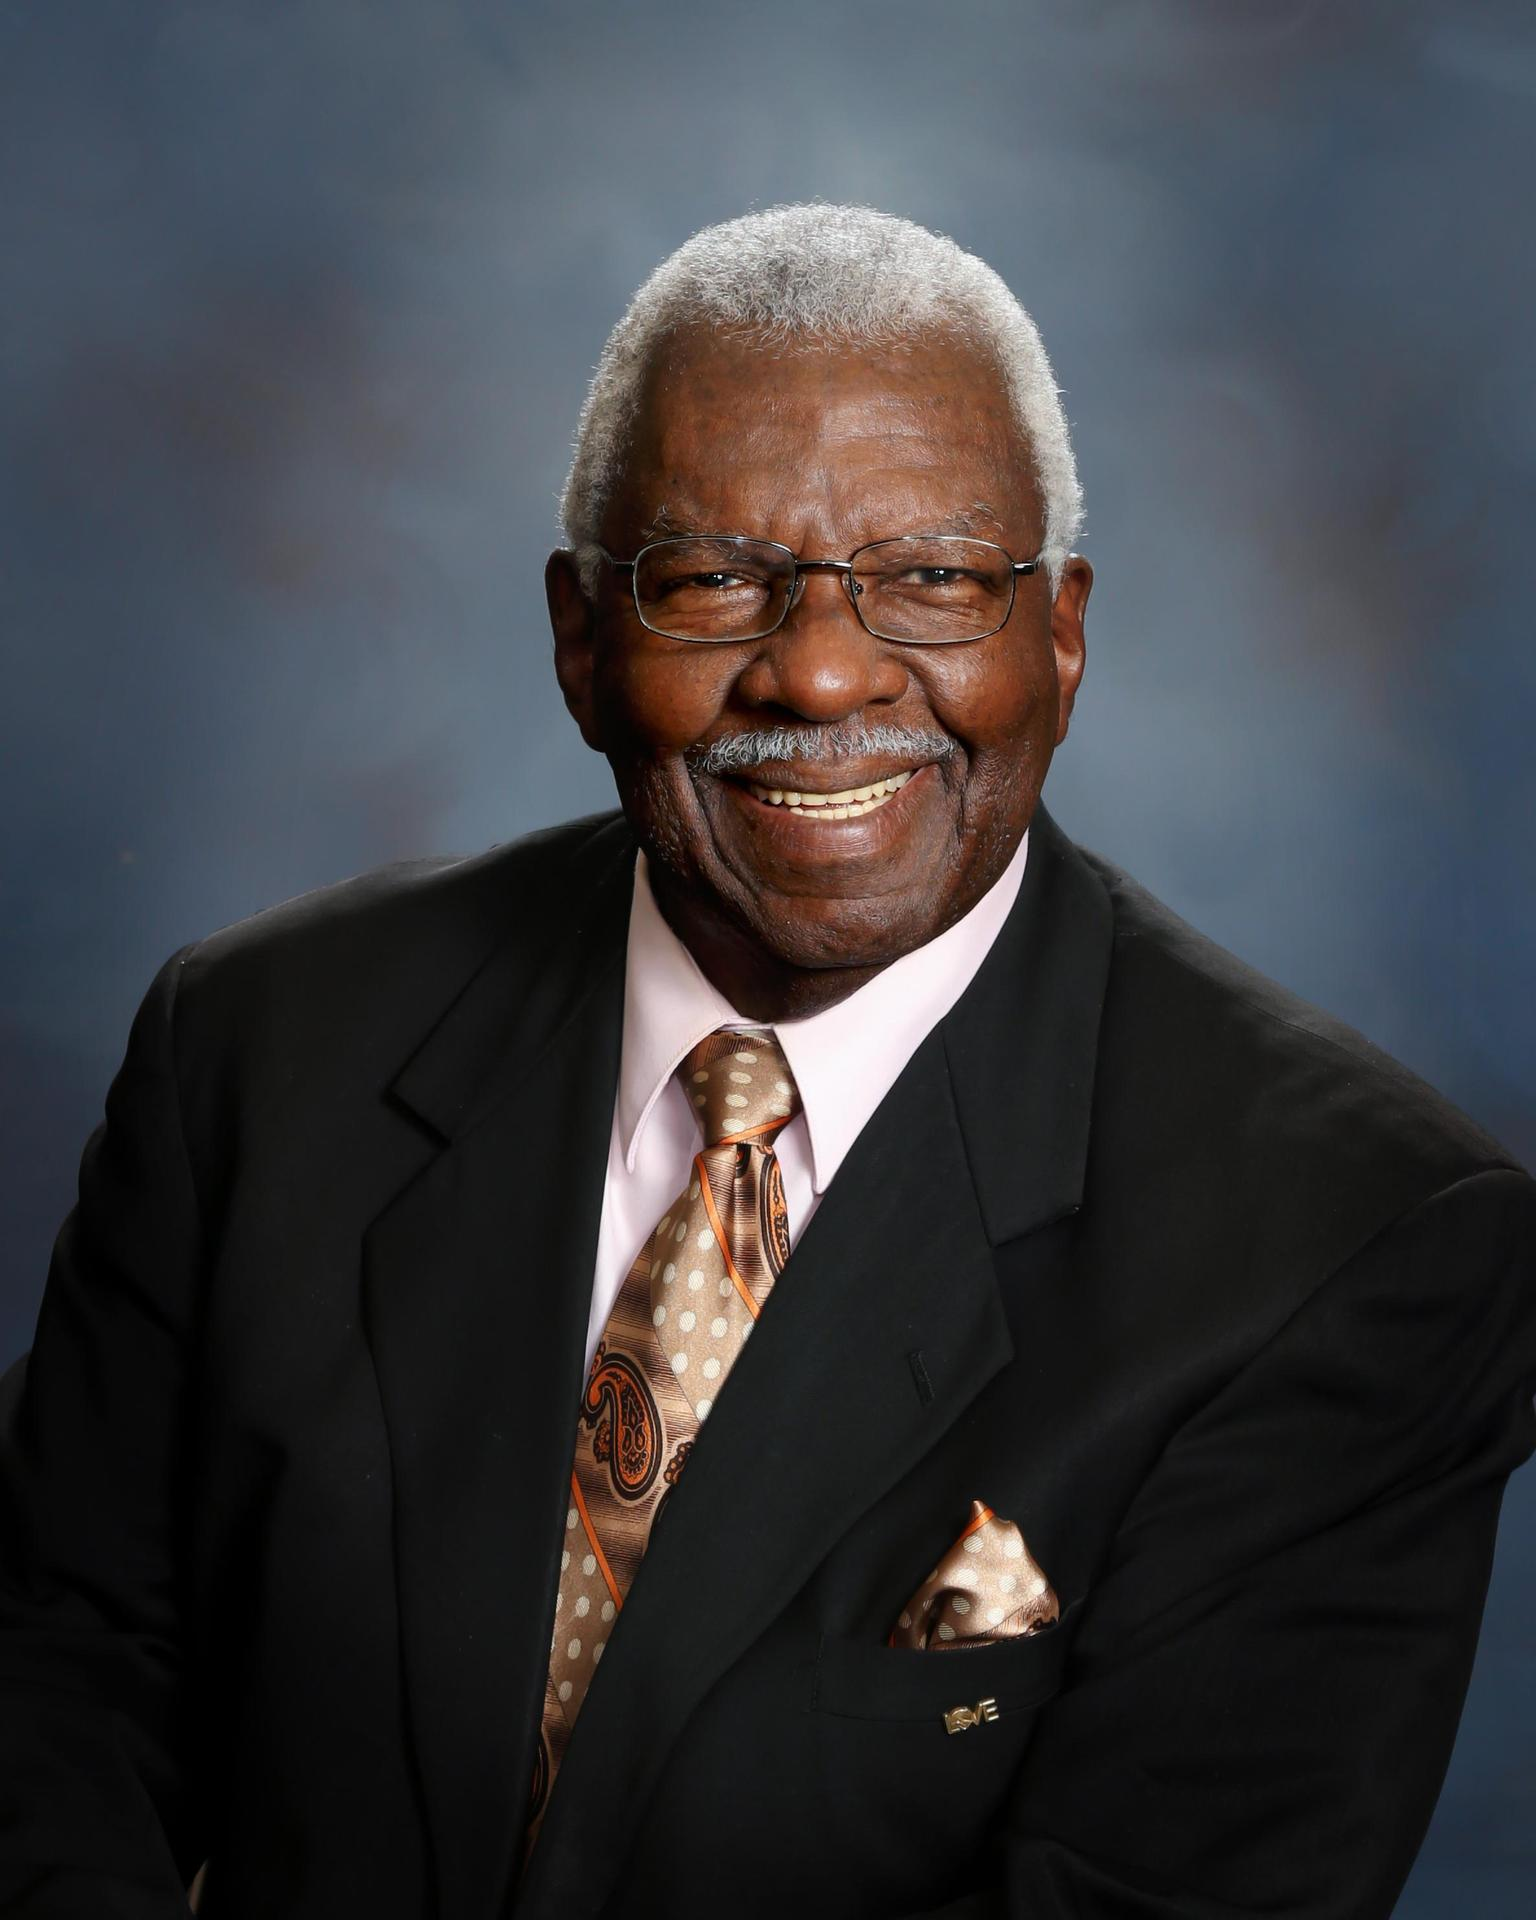 The Honorable Carl Jackson